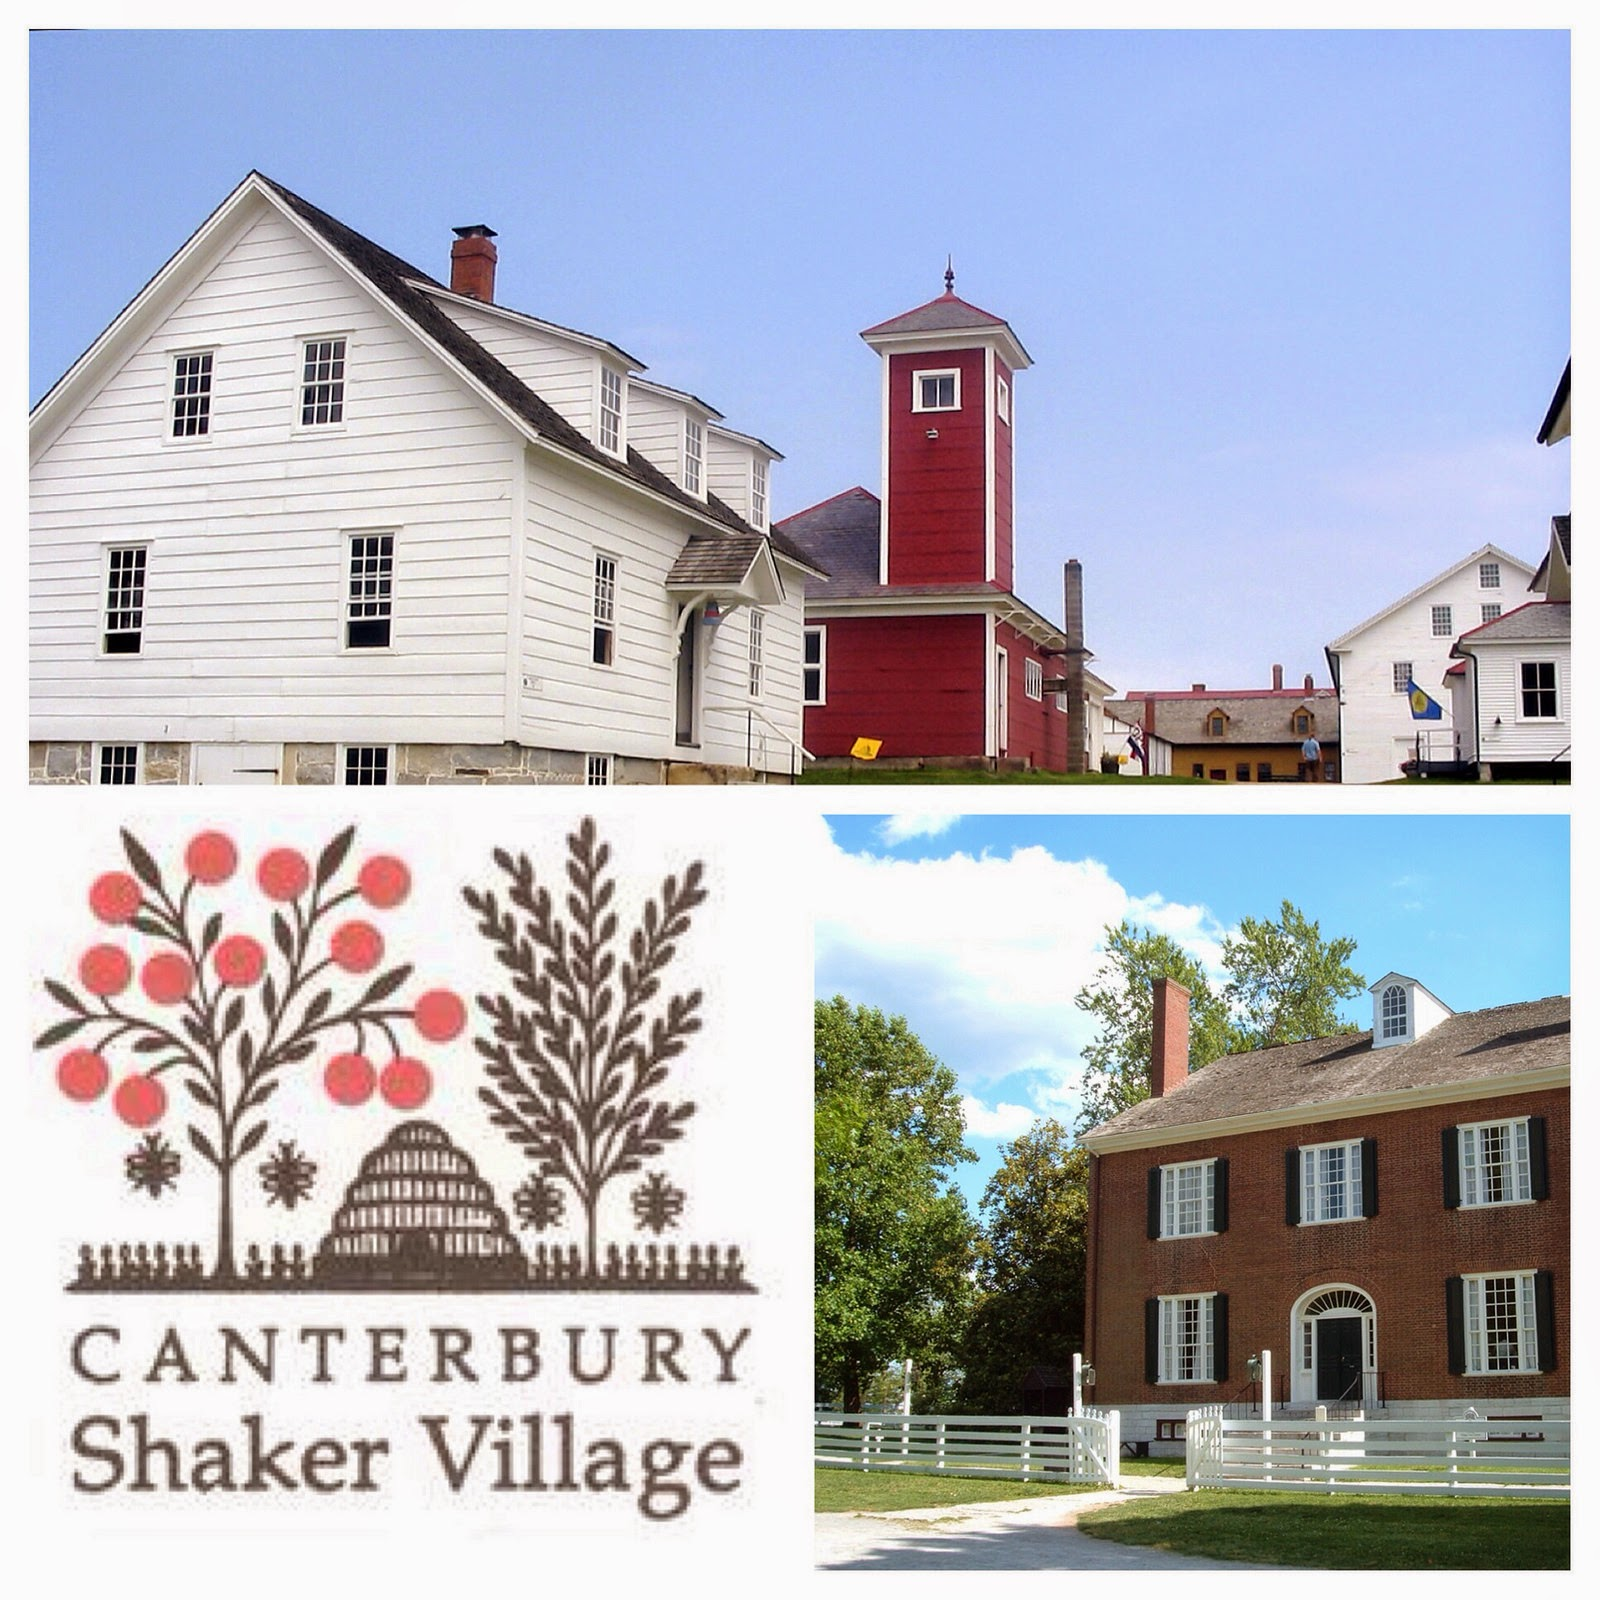 Last Chance to Use Shaker Village Discount Pass